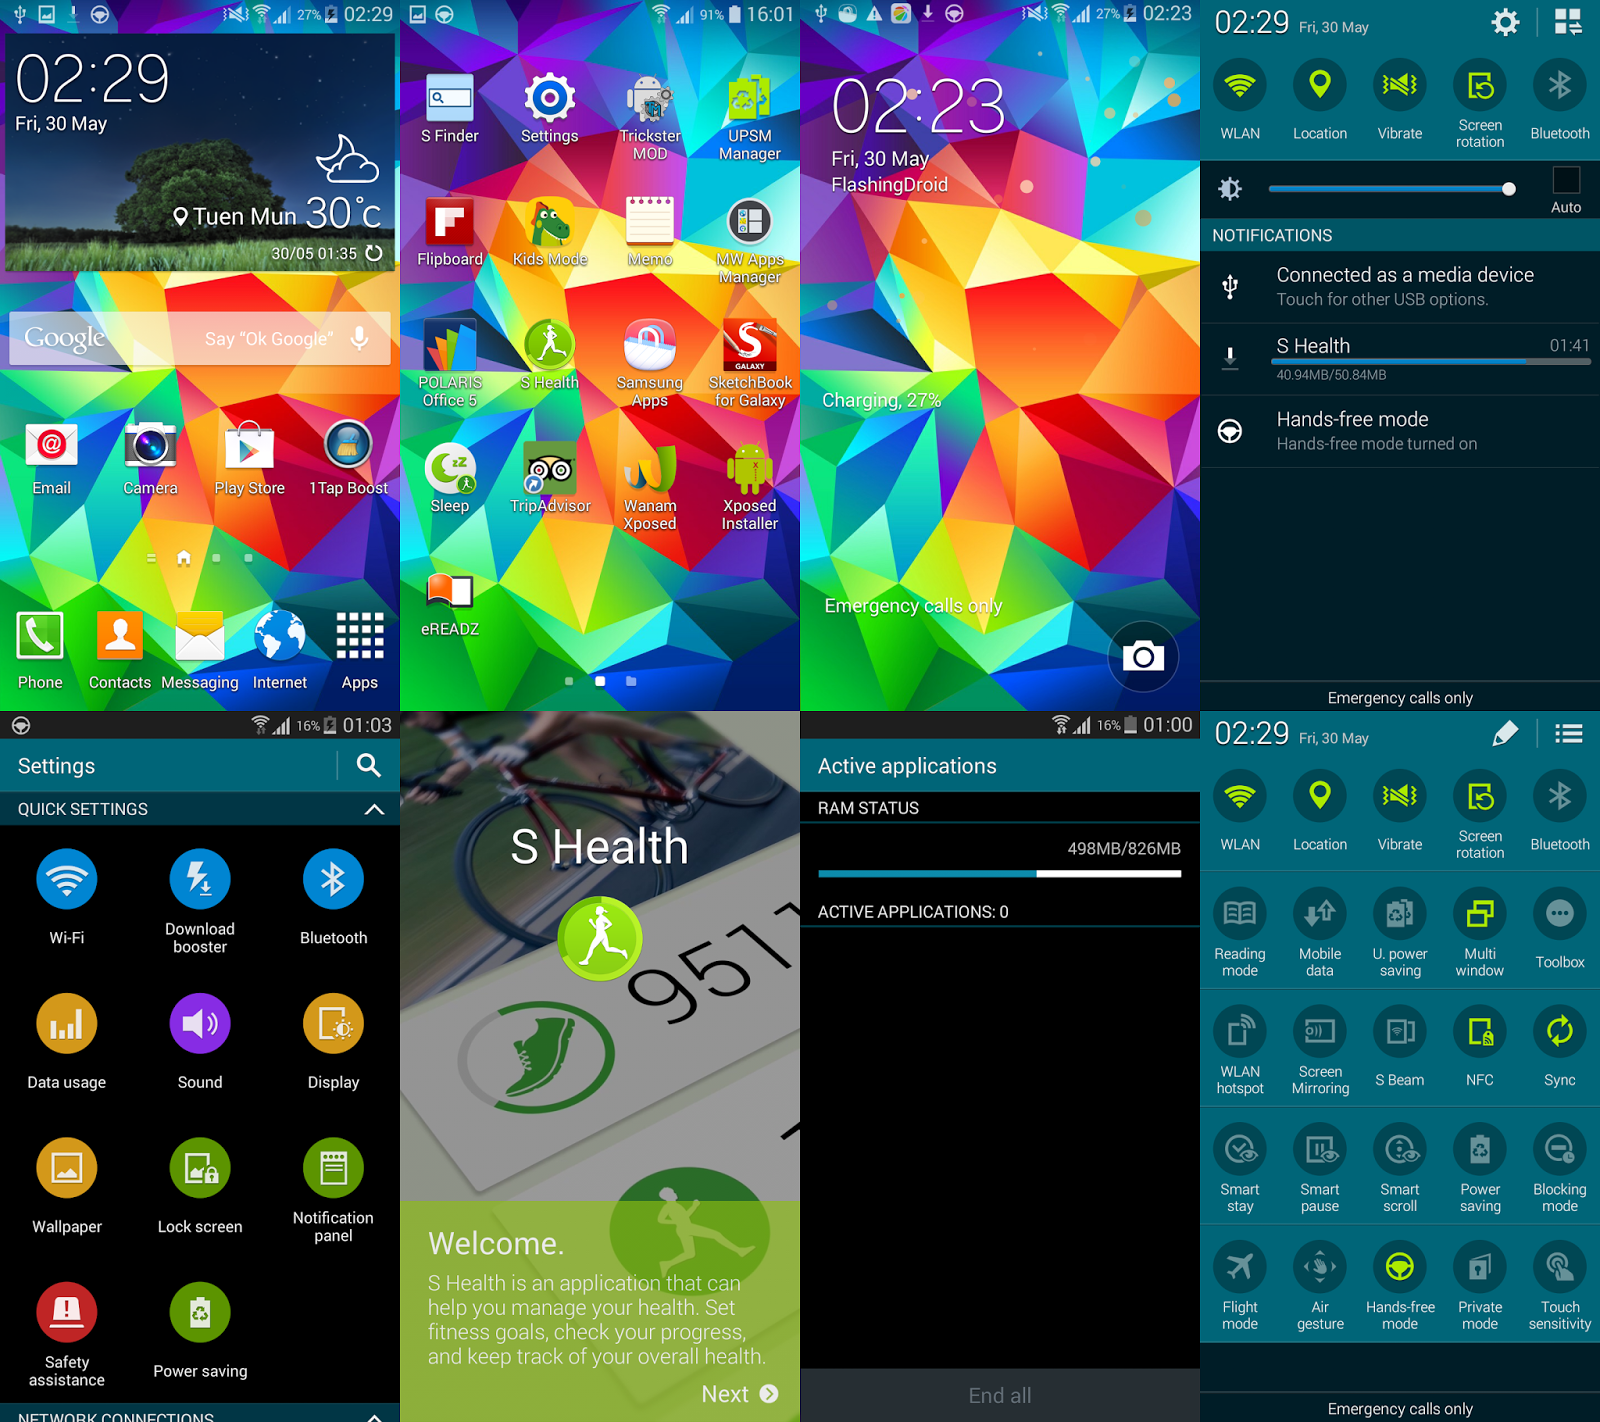 ROM][4 4 2][SAMMY][OC][NE1] FlashingDroid_V1 -GS5 APPs/UI